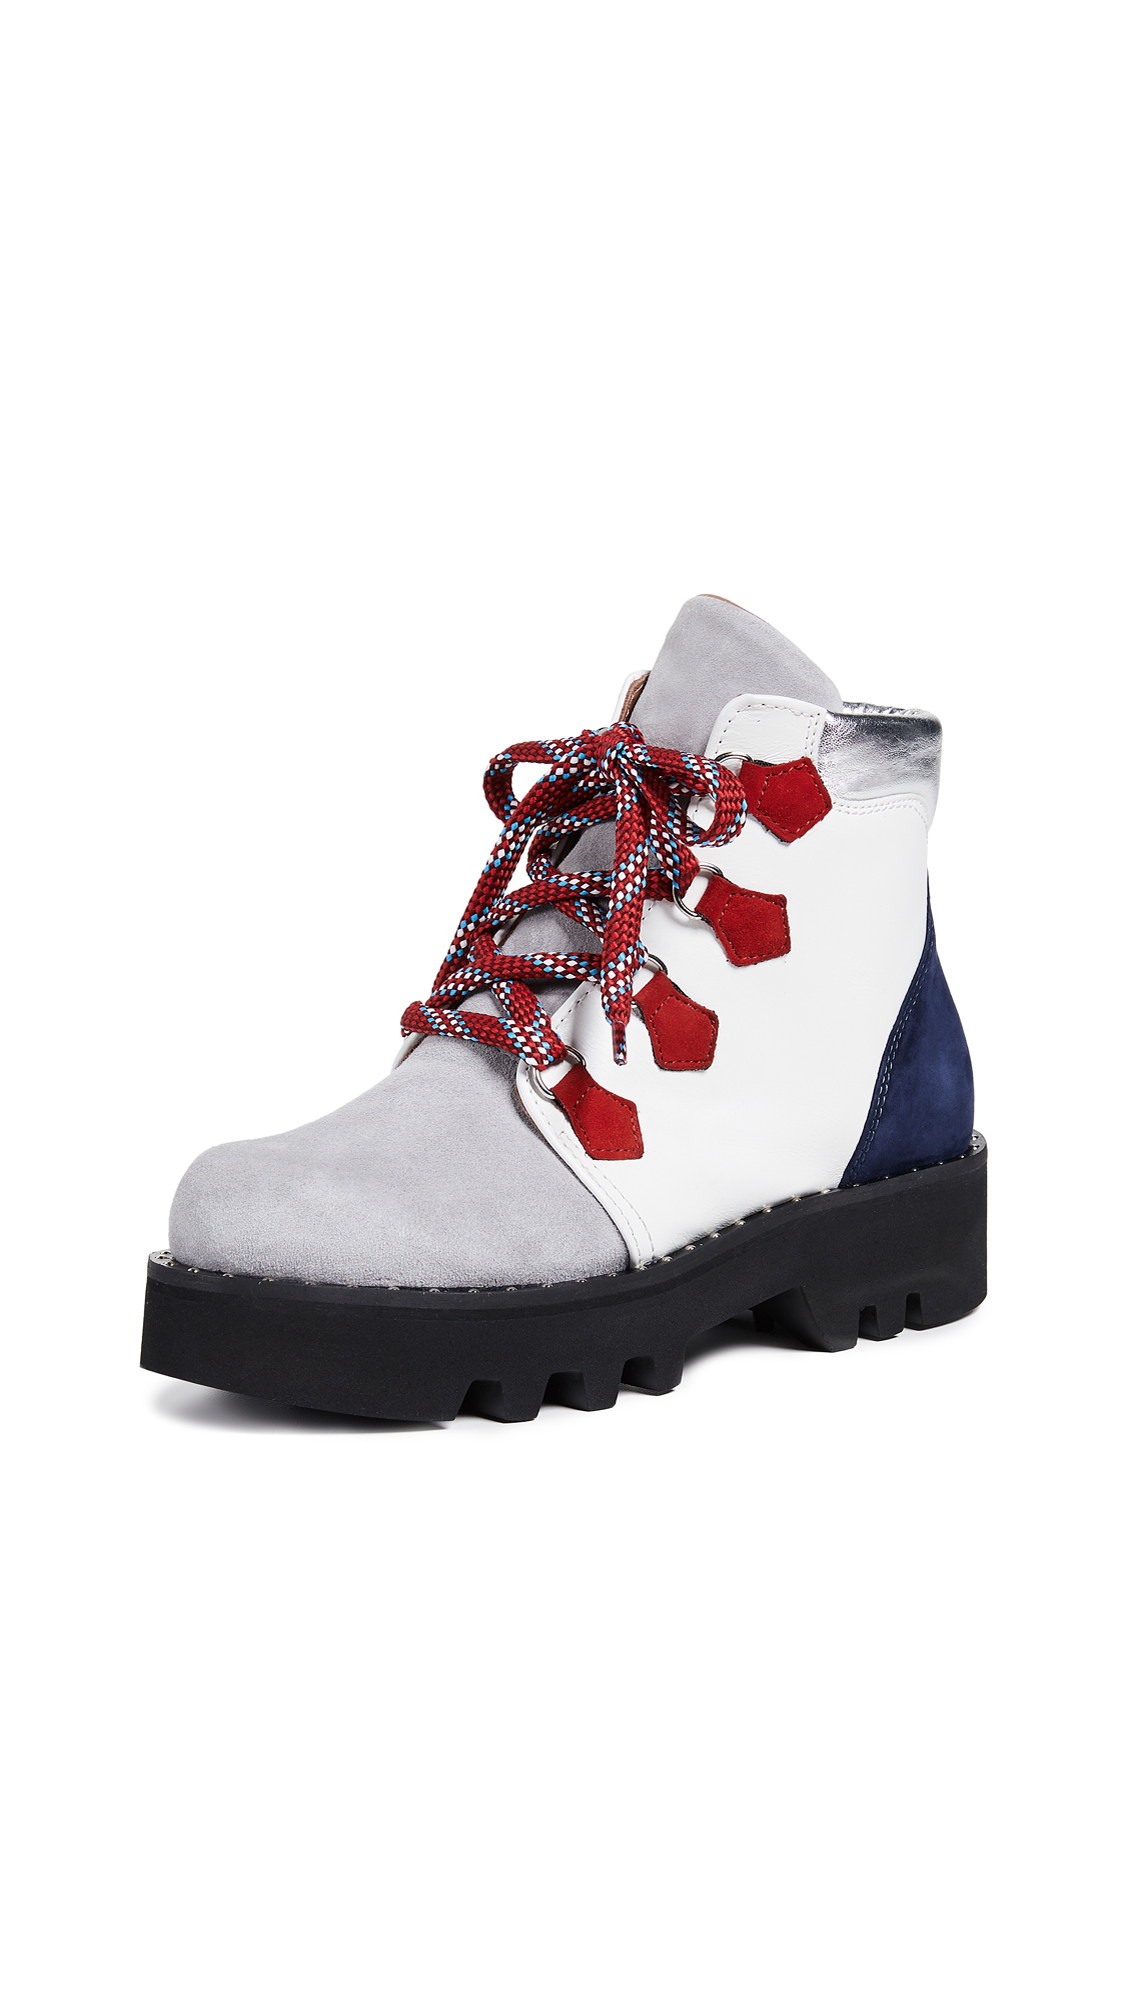 Tabitha Simmons Neir Hiker Boots - White/Grey/Navy/Red